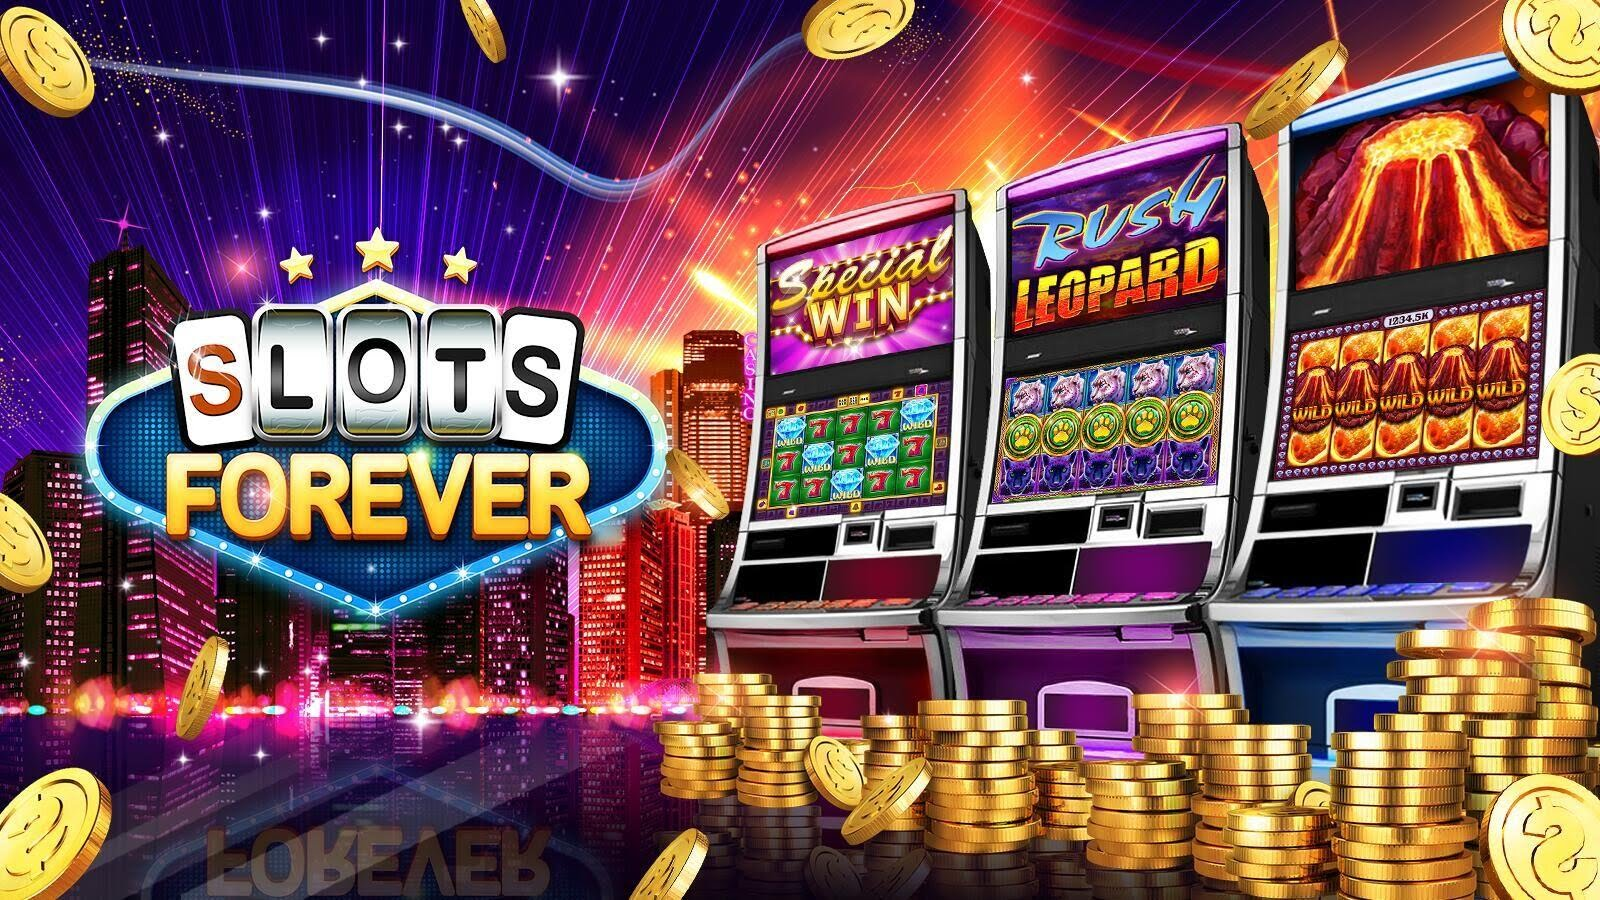 Pragmatic Play Slot Gambling Site with Low Credit Deposit